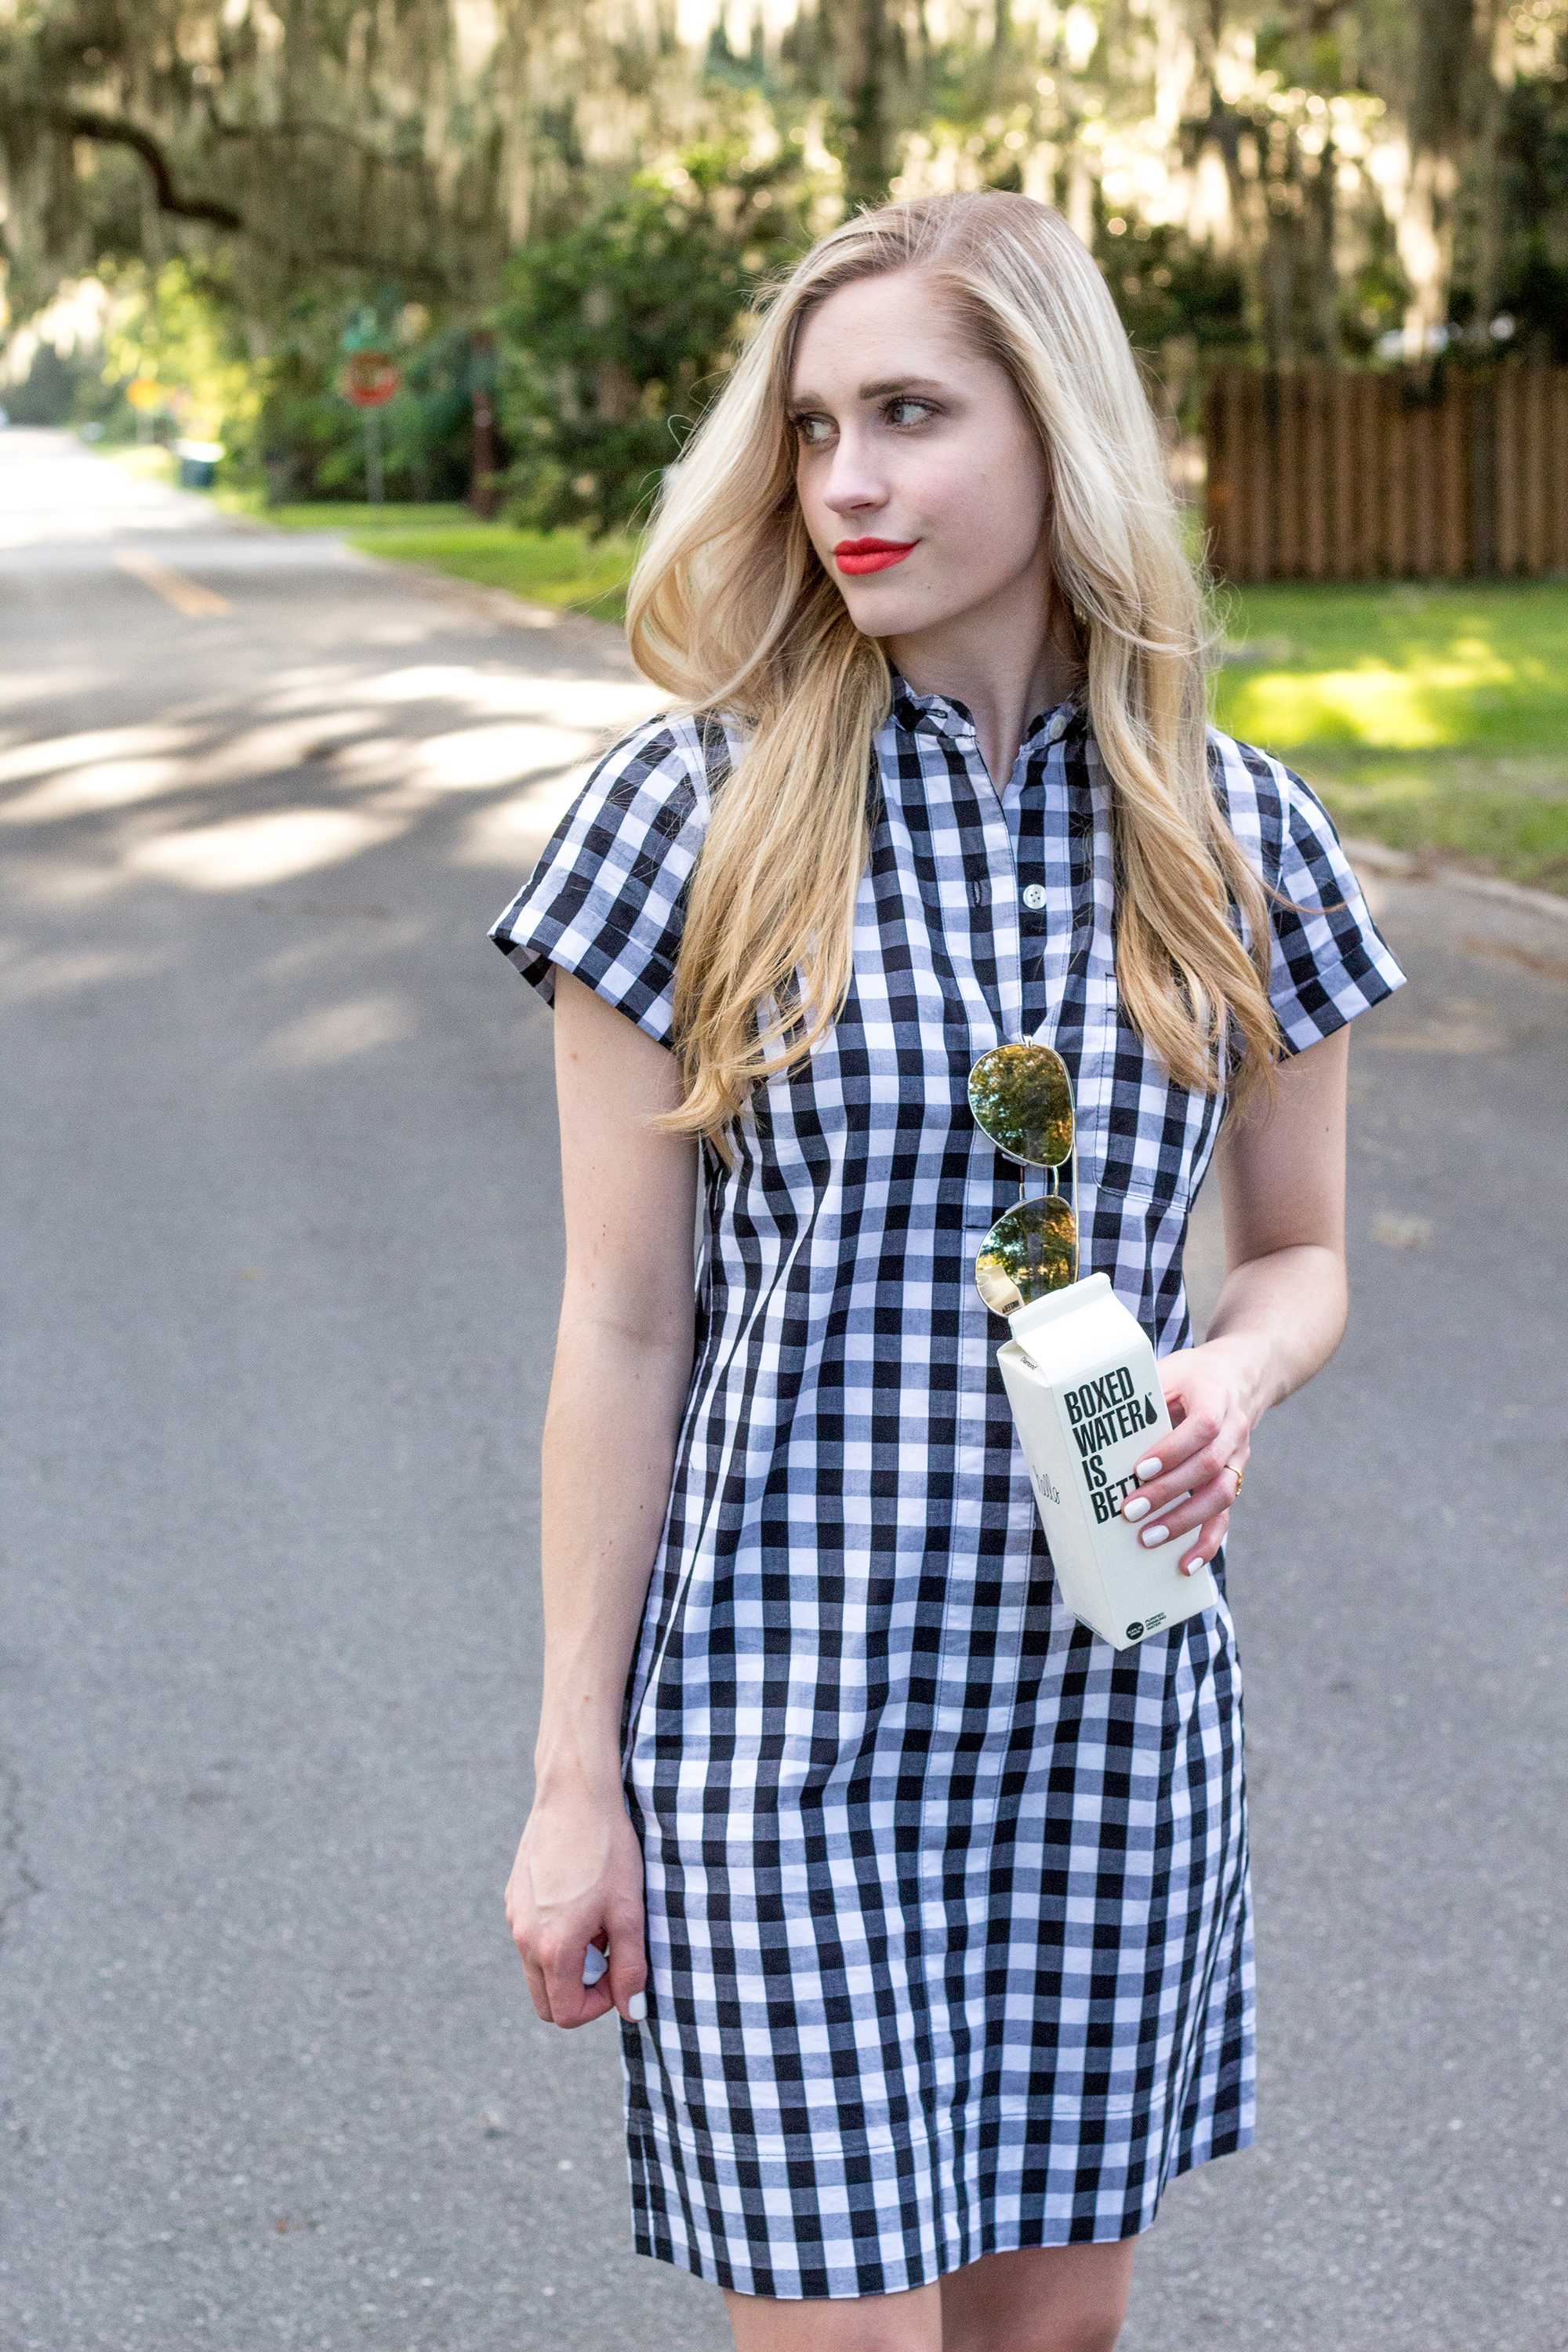 jcrew-j.crew-boxed-water-gingham-black-and-white-checkered-shirtdress-shirt-dress-ootd-styelled-elle-elisabeth-fashion-style-blogger-wiw-adidas-superstar-quay-australia-desi-perkins-07